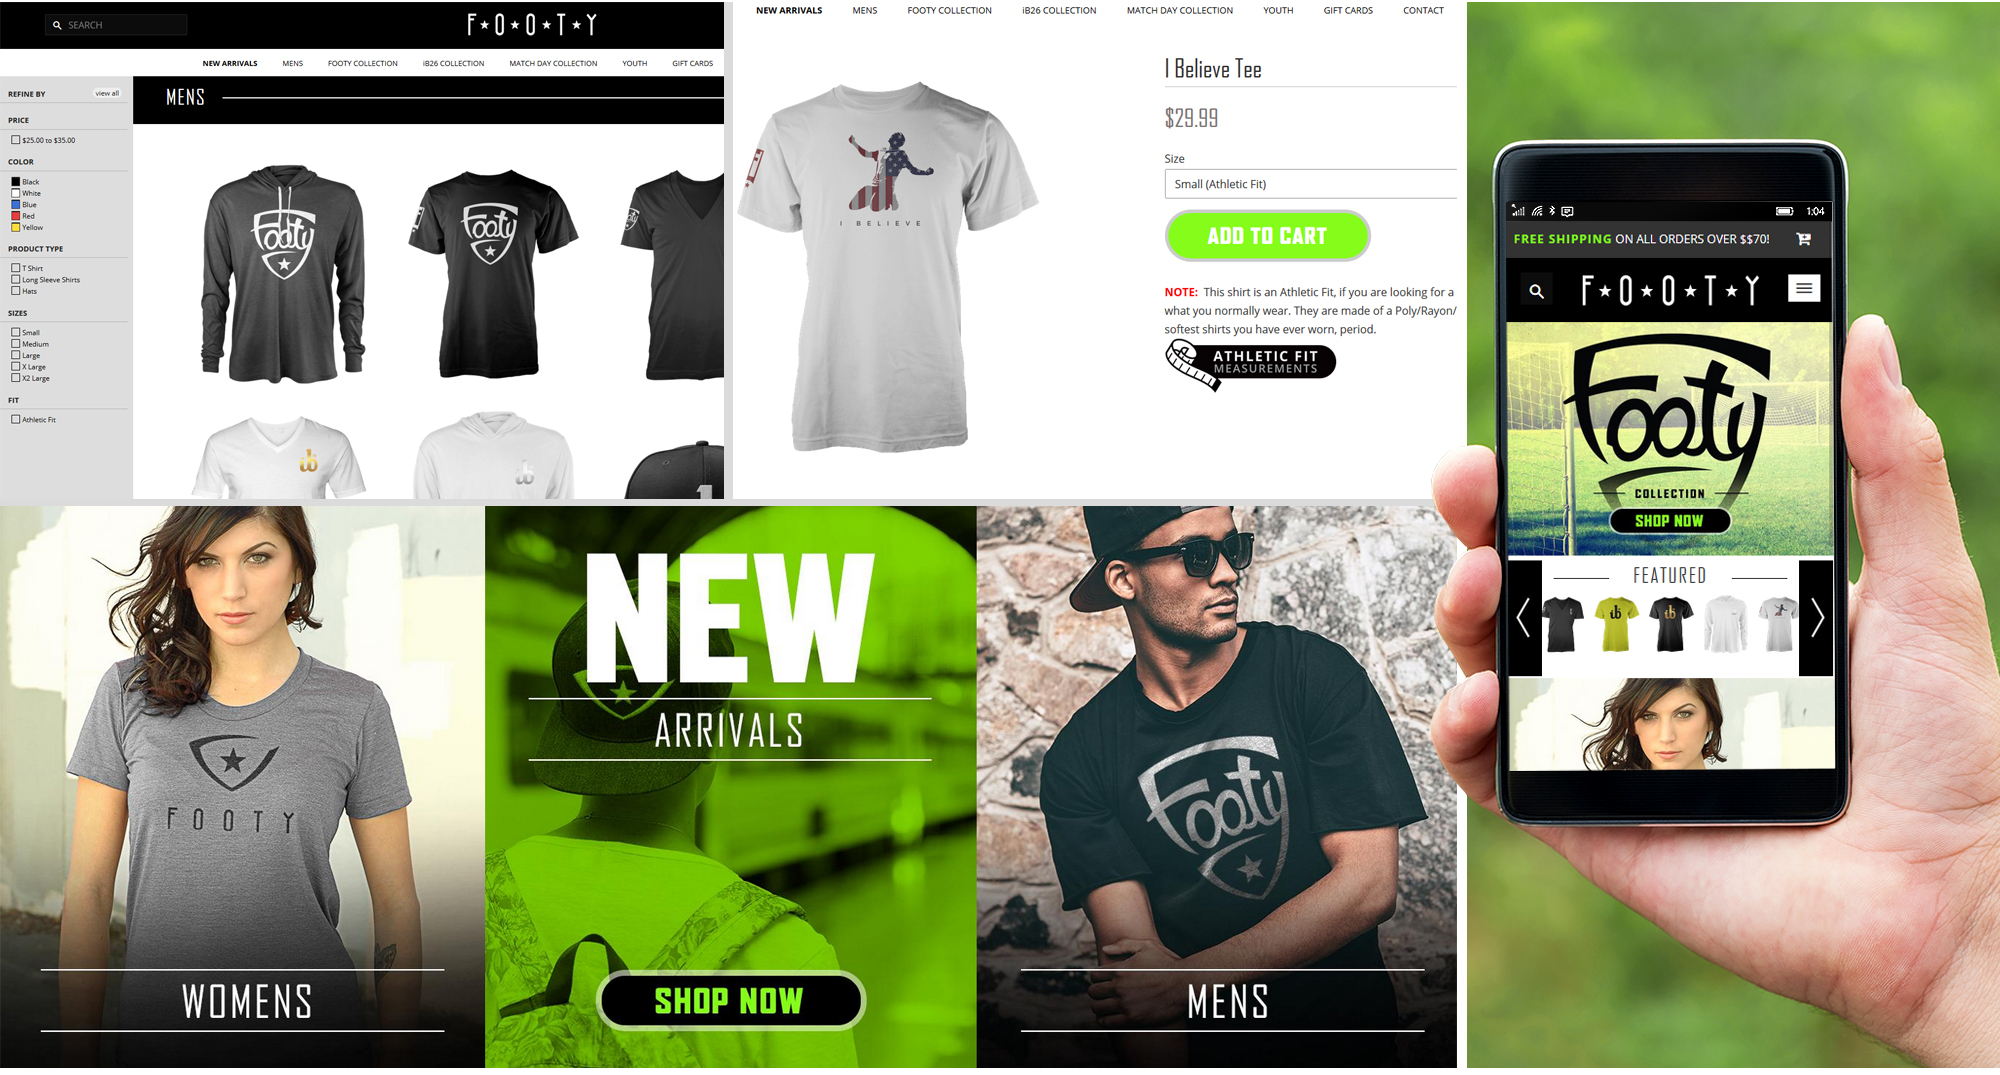 Milwaukee web marketing for Footy Brand